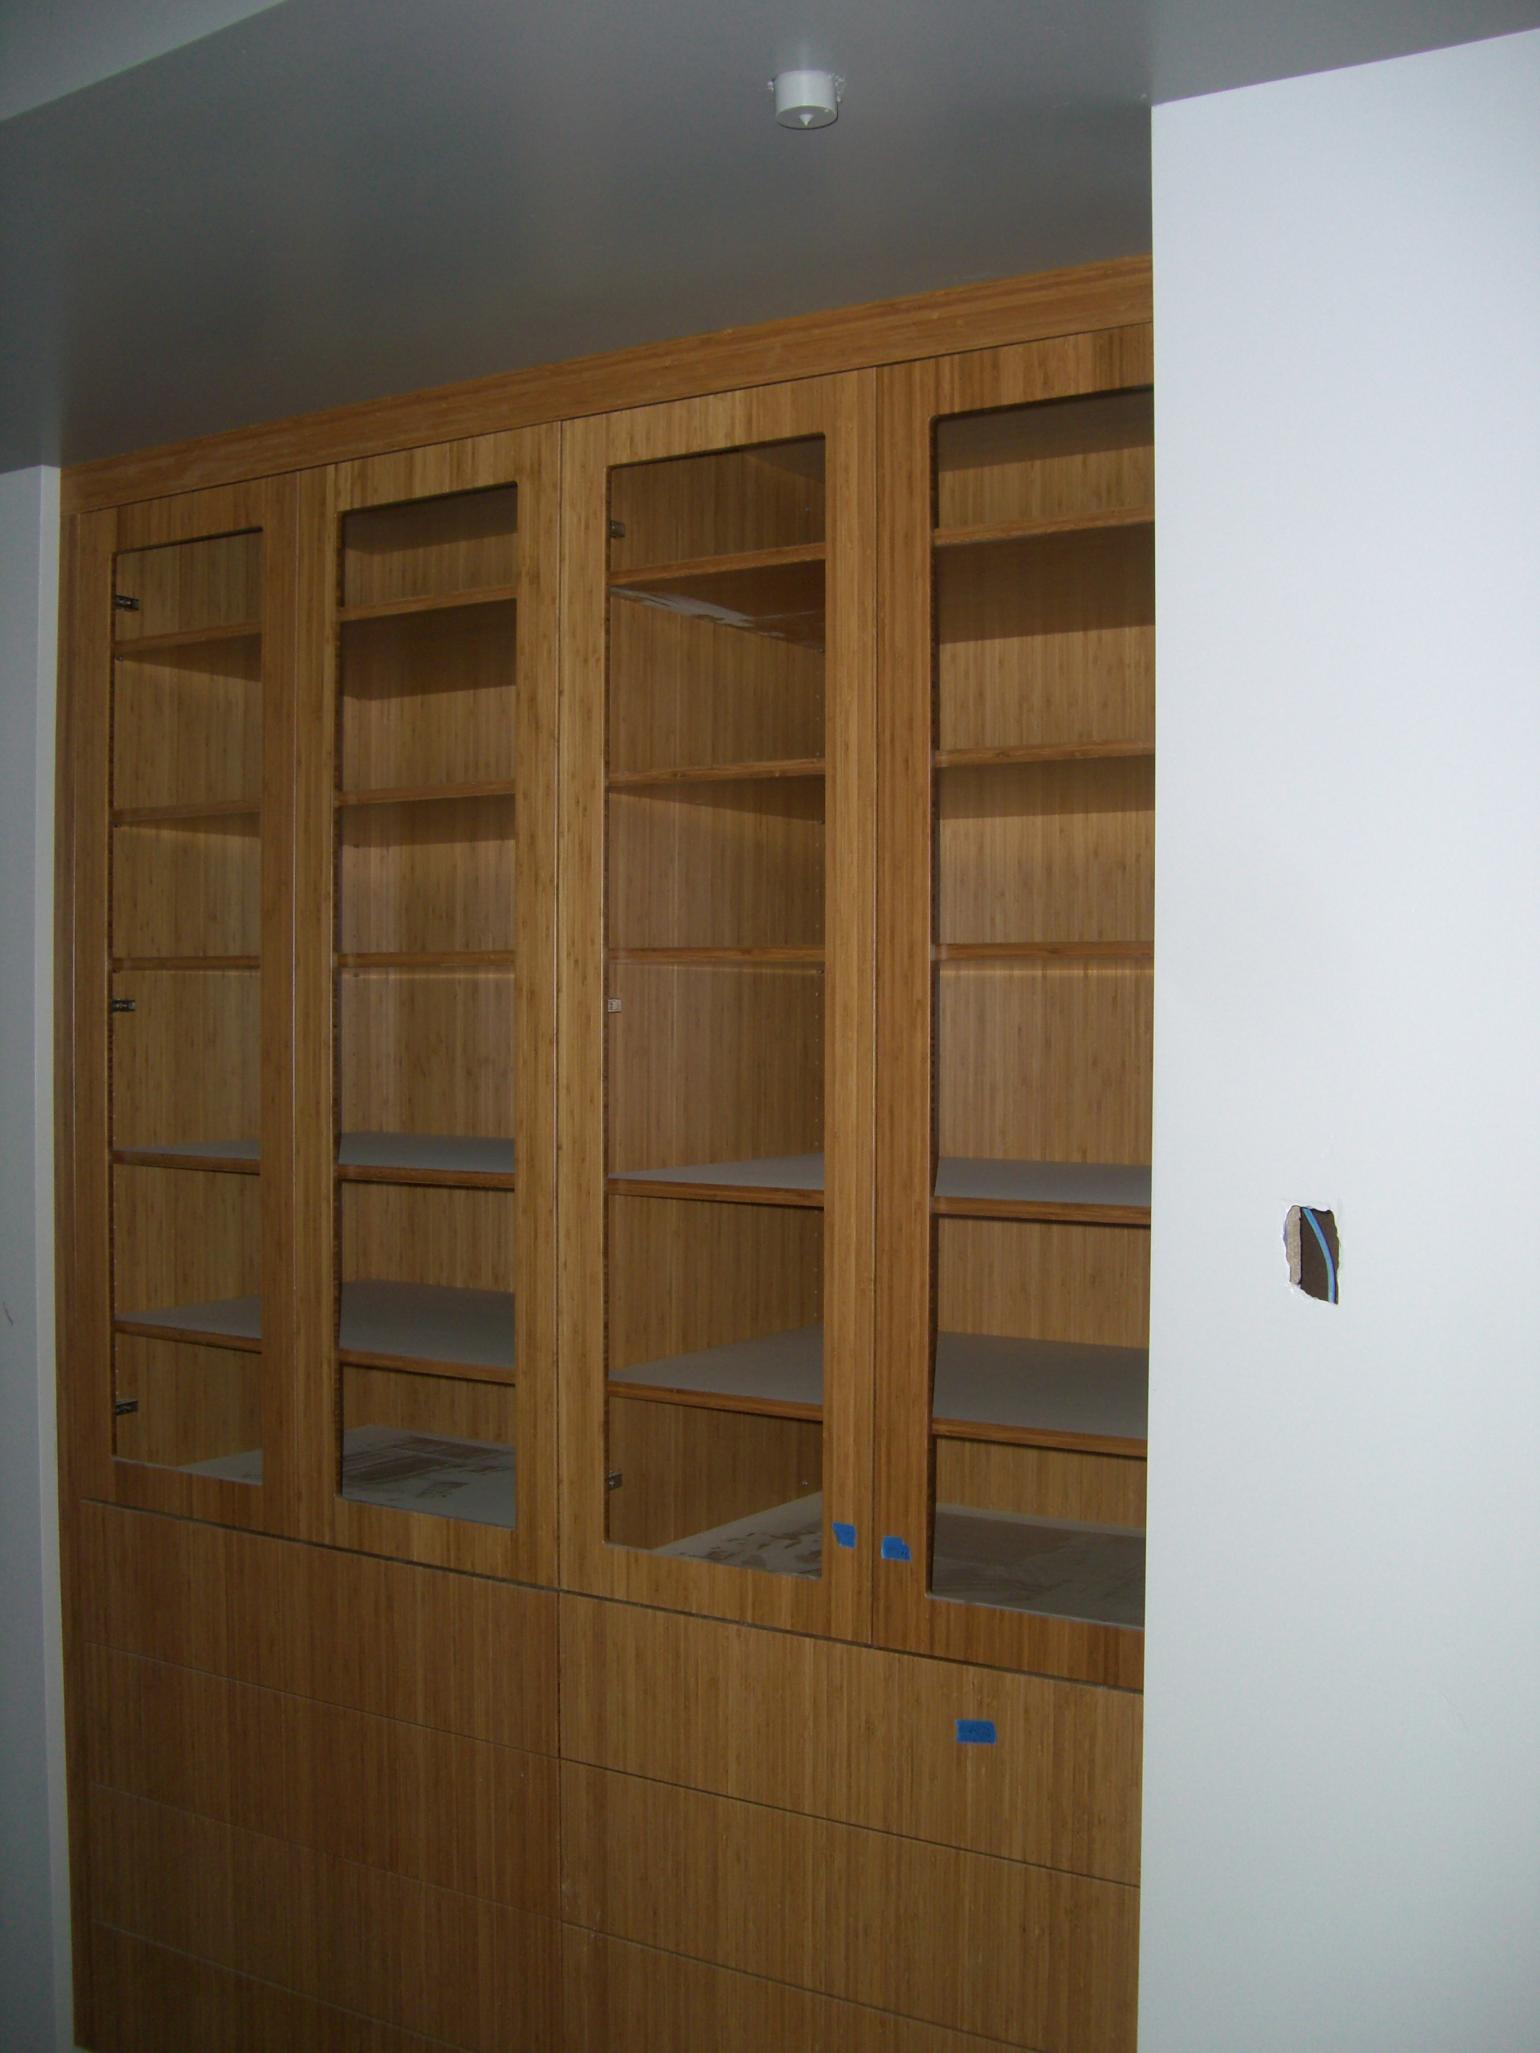 Bamboo Cabinet Doors Page 2 Finish Carpentry Contractor Talk